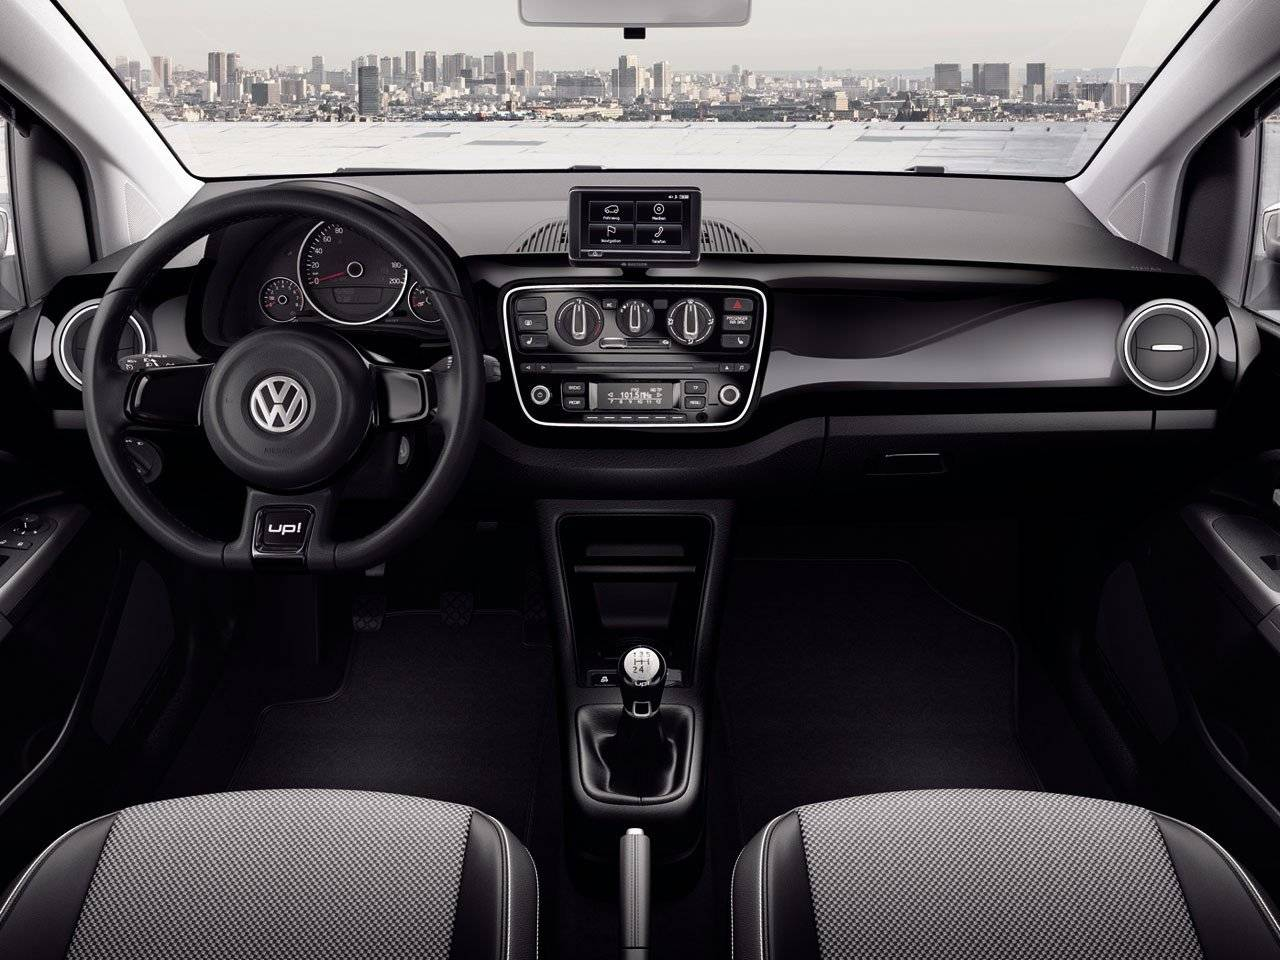 Interieur Vw Up Officieel Volkswagen Up Begin 2012 Bij De Dealer Autowereld